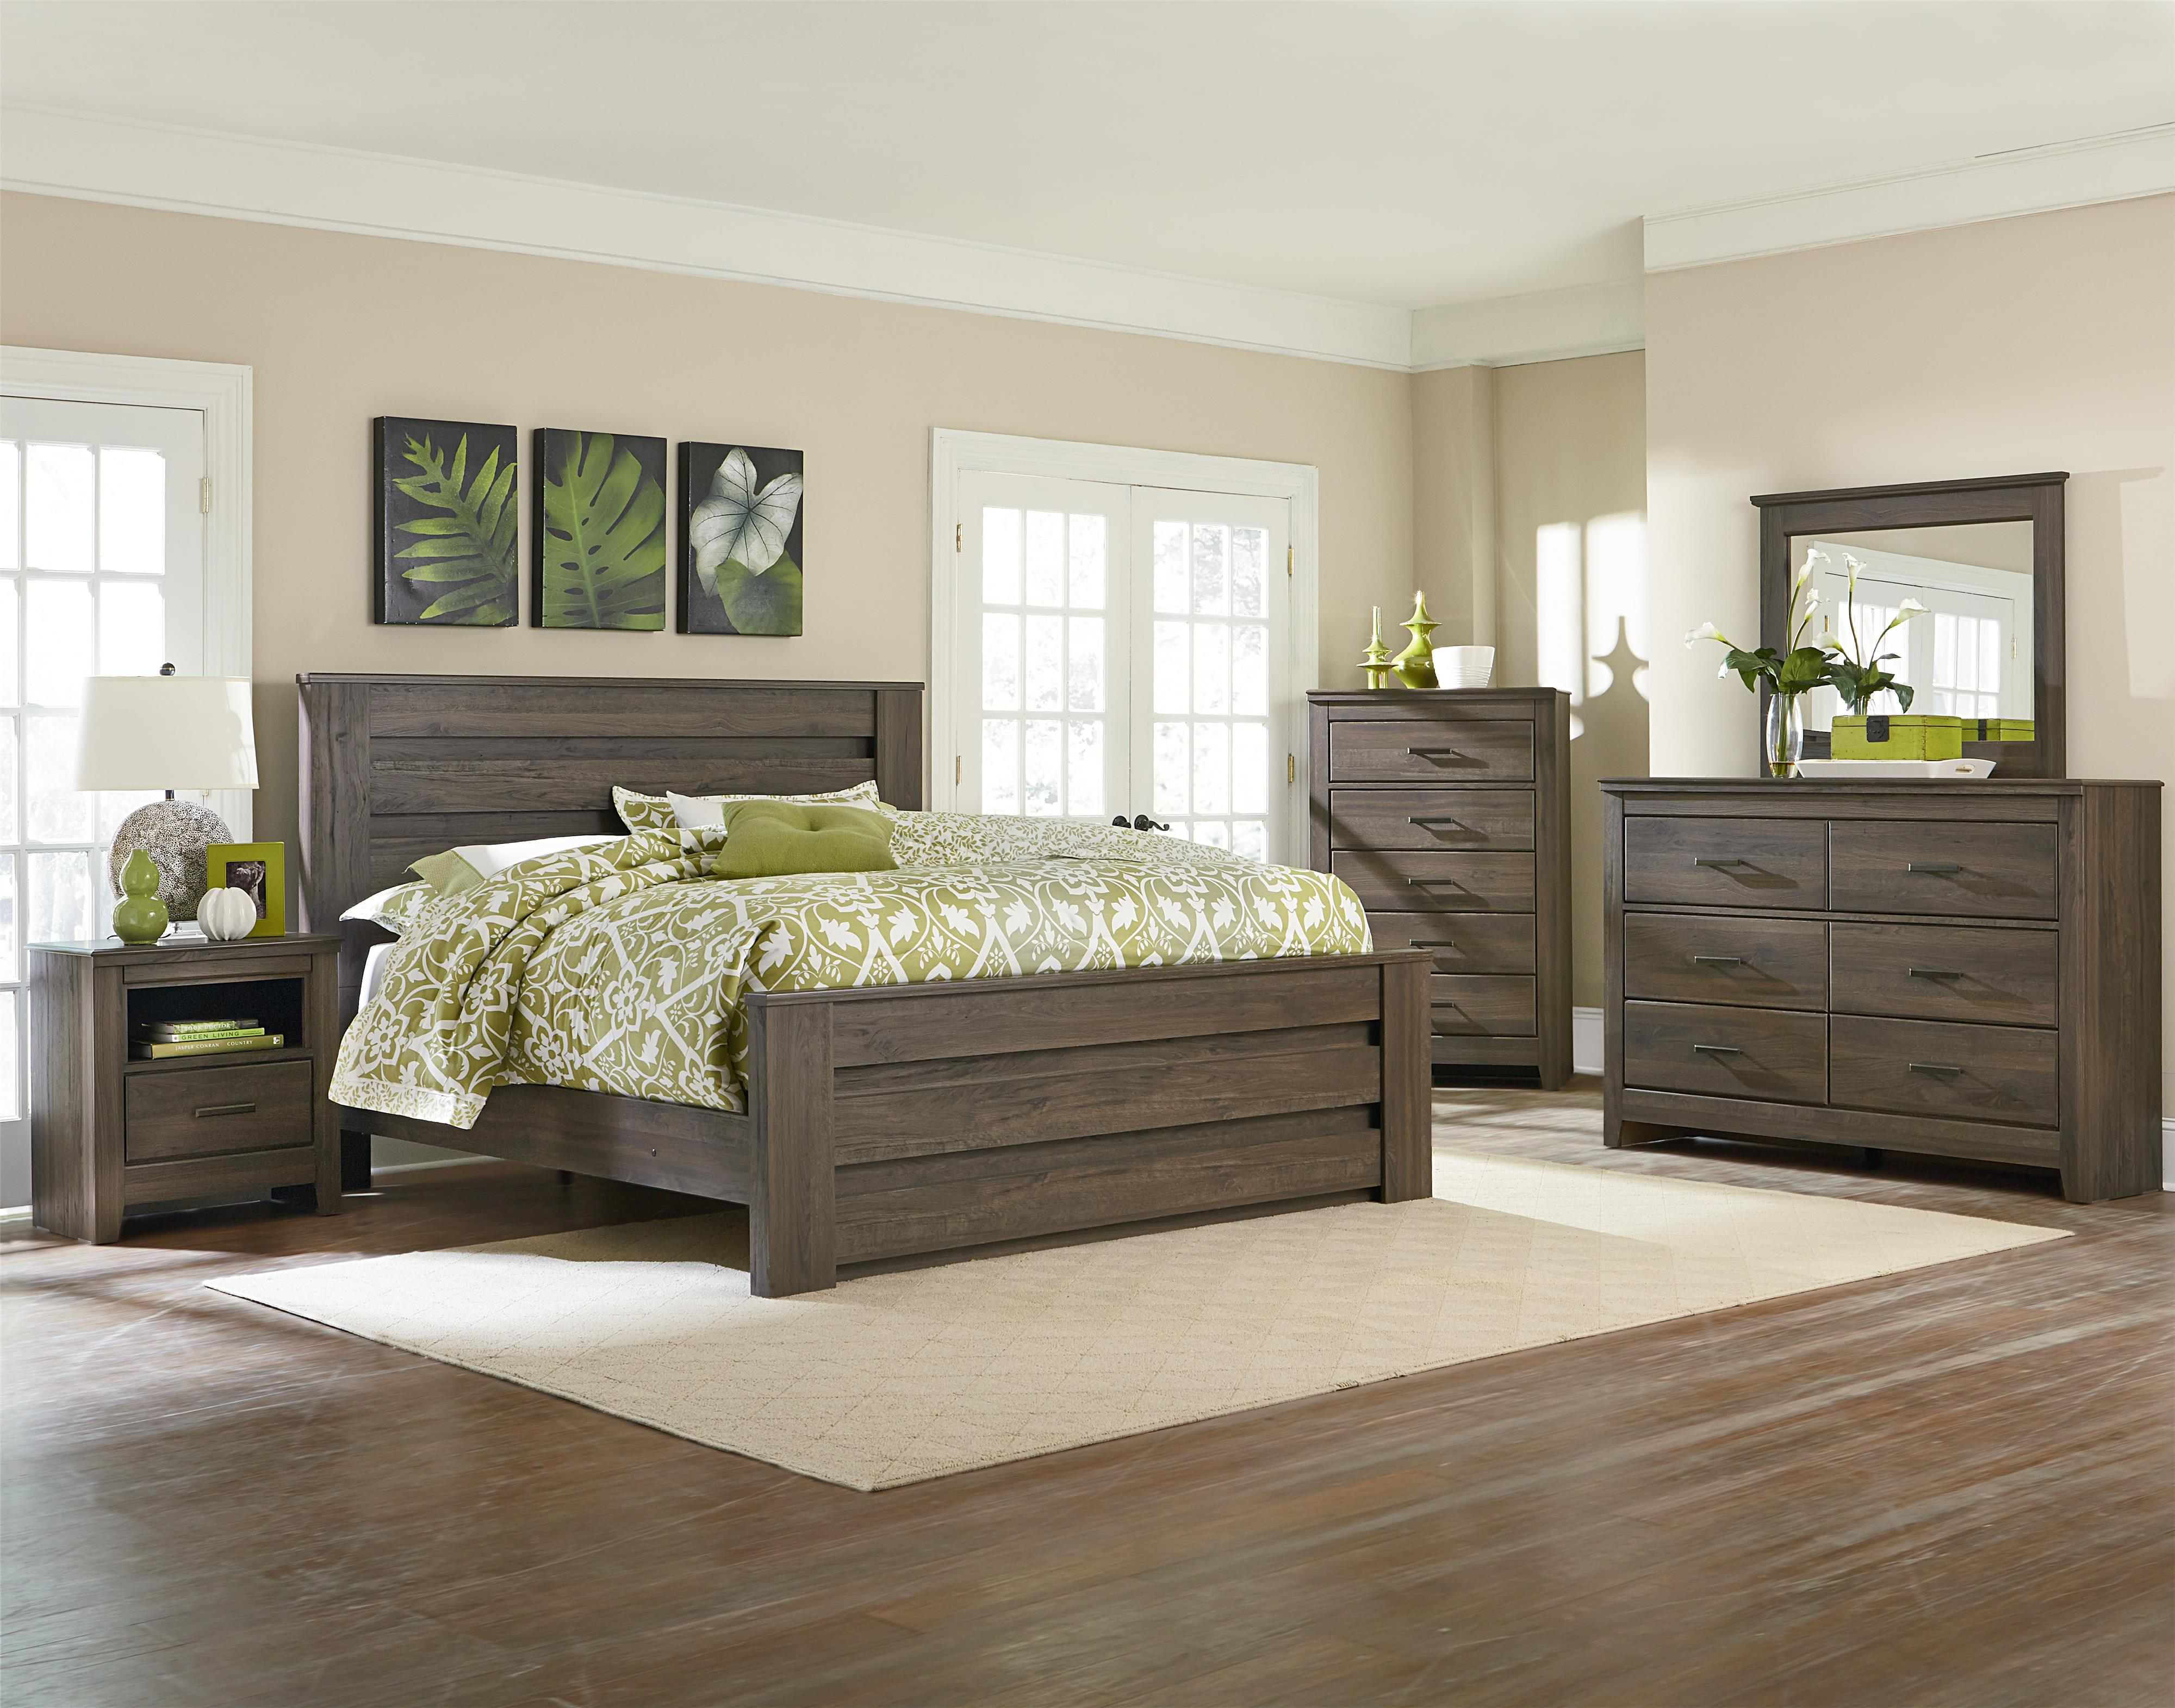 Standard Furniture Hayward Queen Bedroom Group - Item Number: 56510 Q Bedroom Group 2